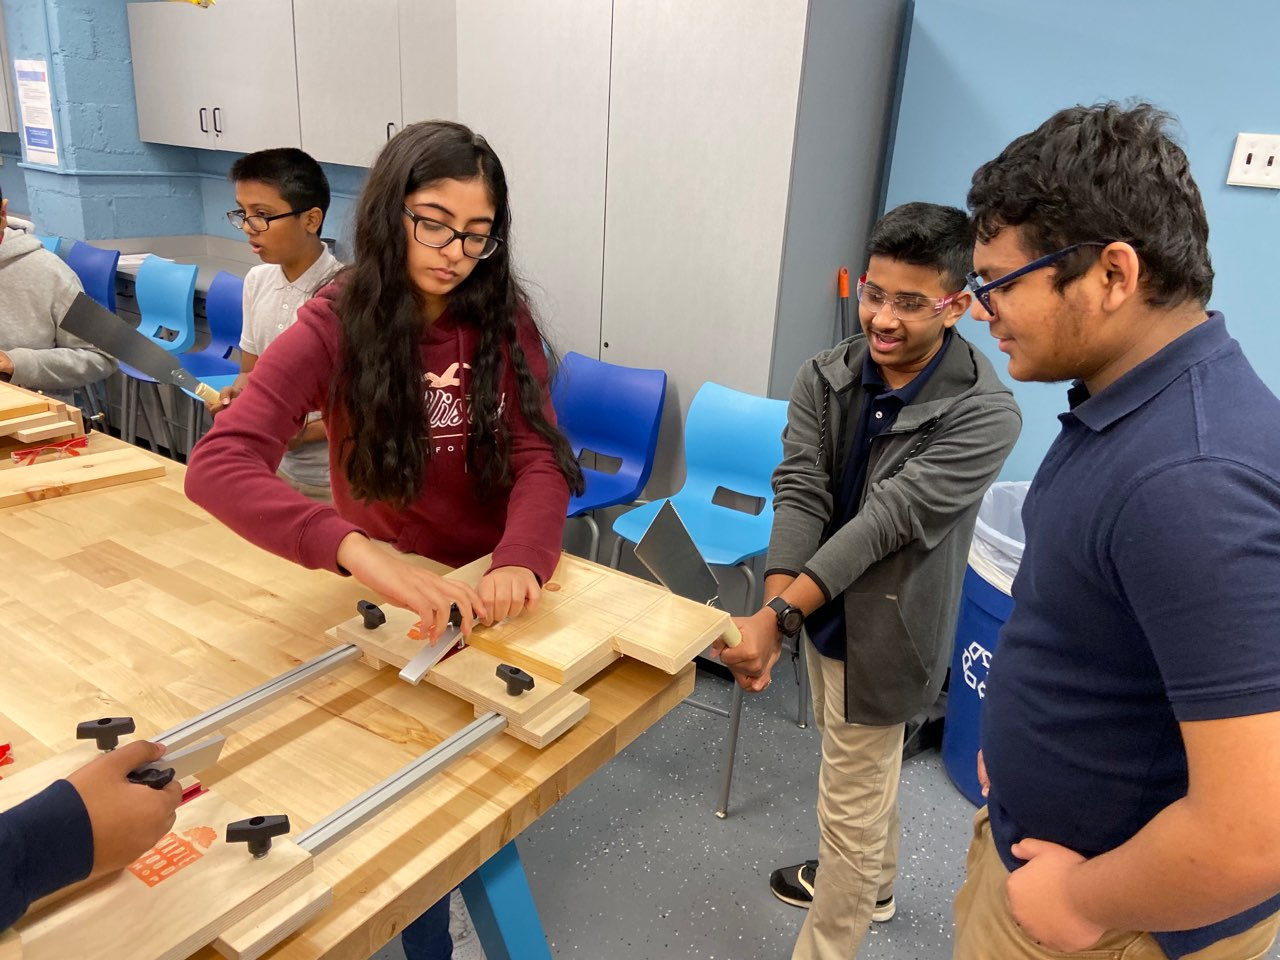 Students use the design lab at the maker space at Thomas Edison HS during Computer Science Ed week